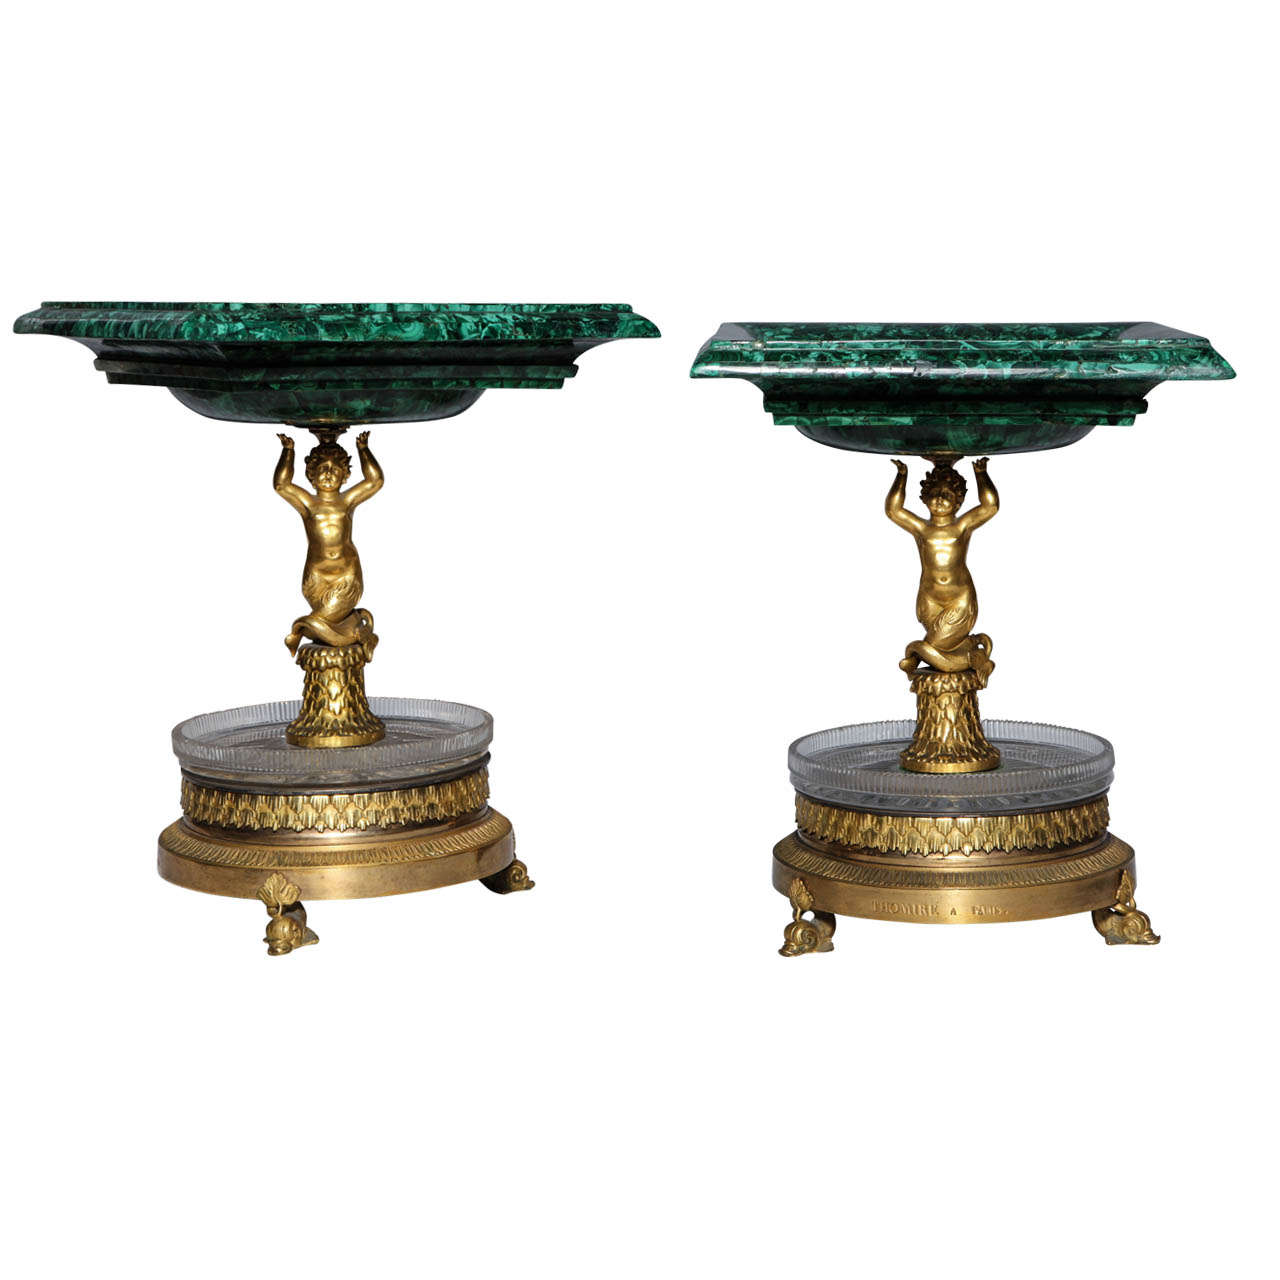 Pair of Russian Empire Malachite, French Bronze centerpiece/Tazzas by Thomier